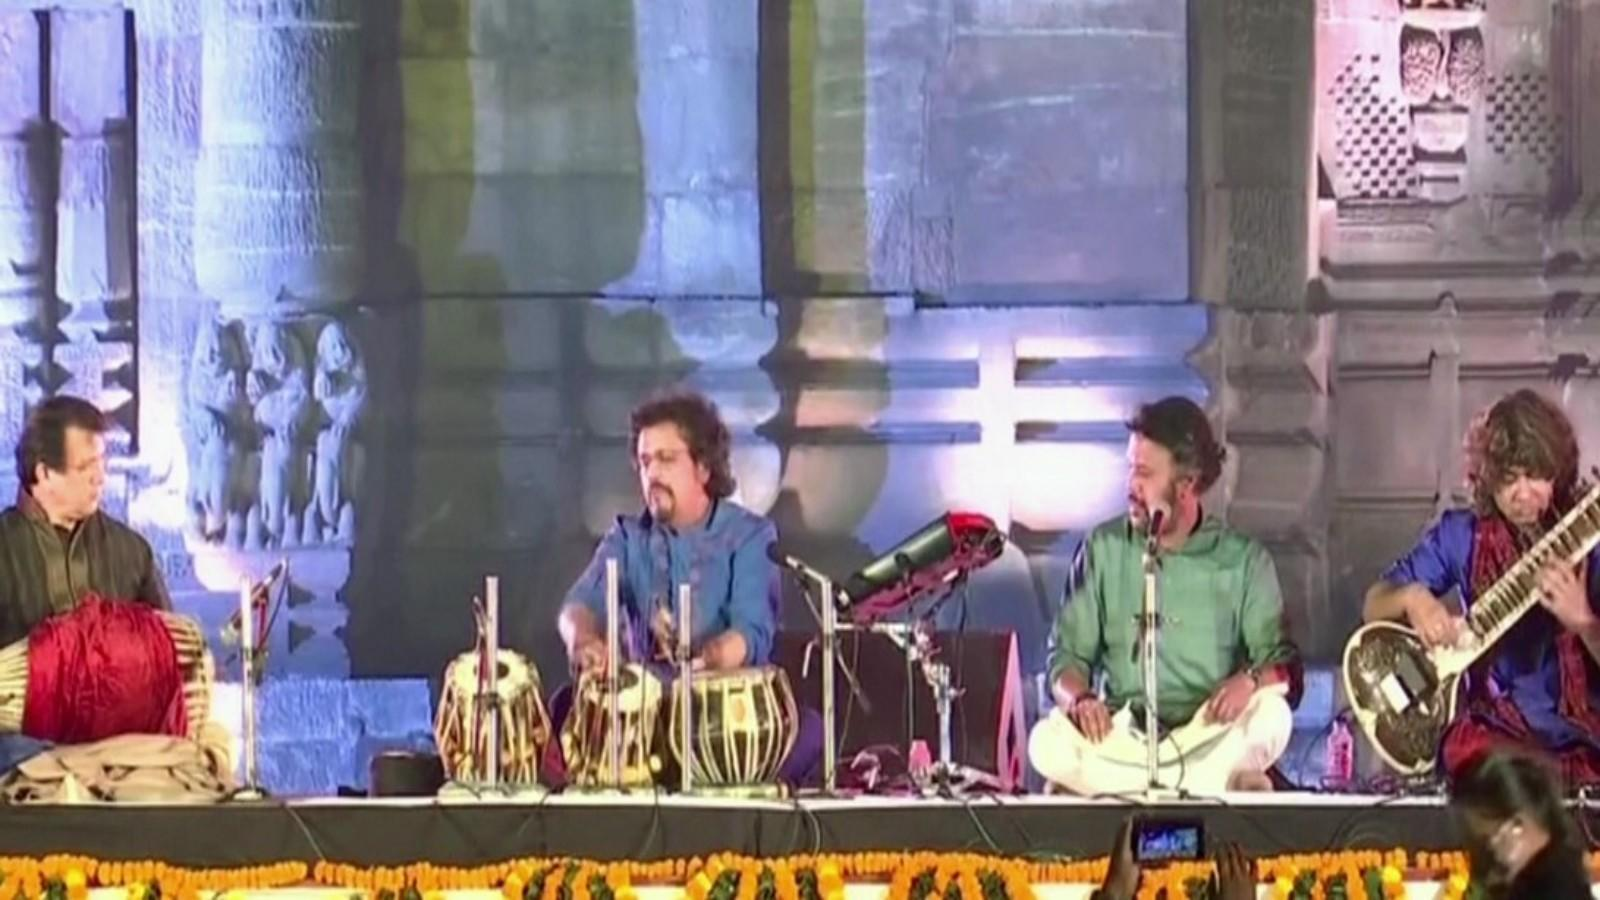 world-famous-rajarani-music-festival-kicks-off-in-bhubaneswar